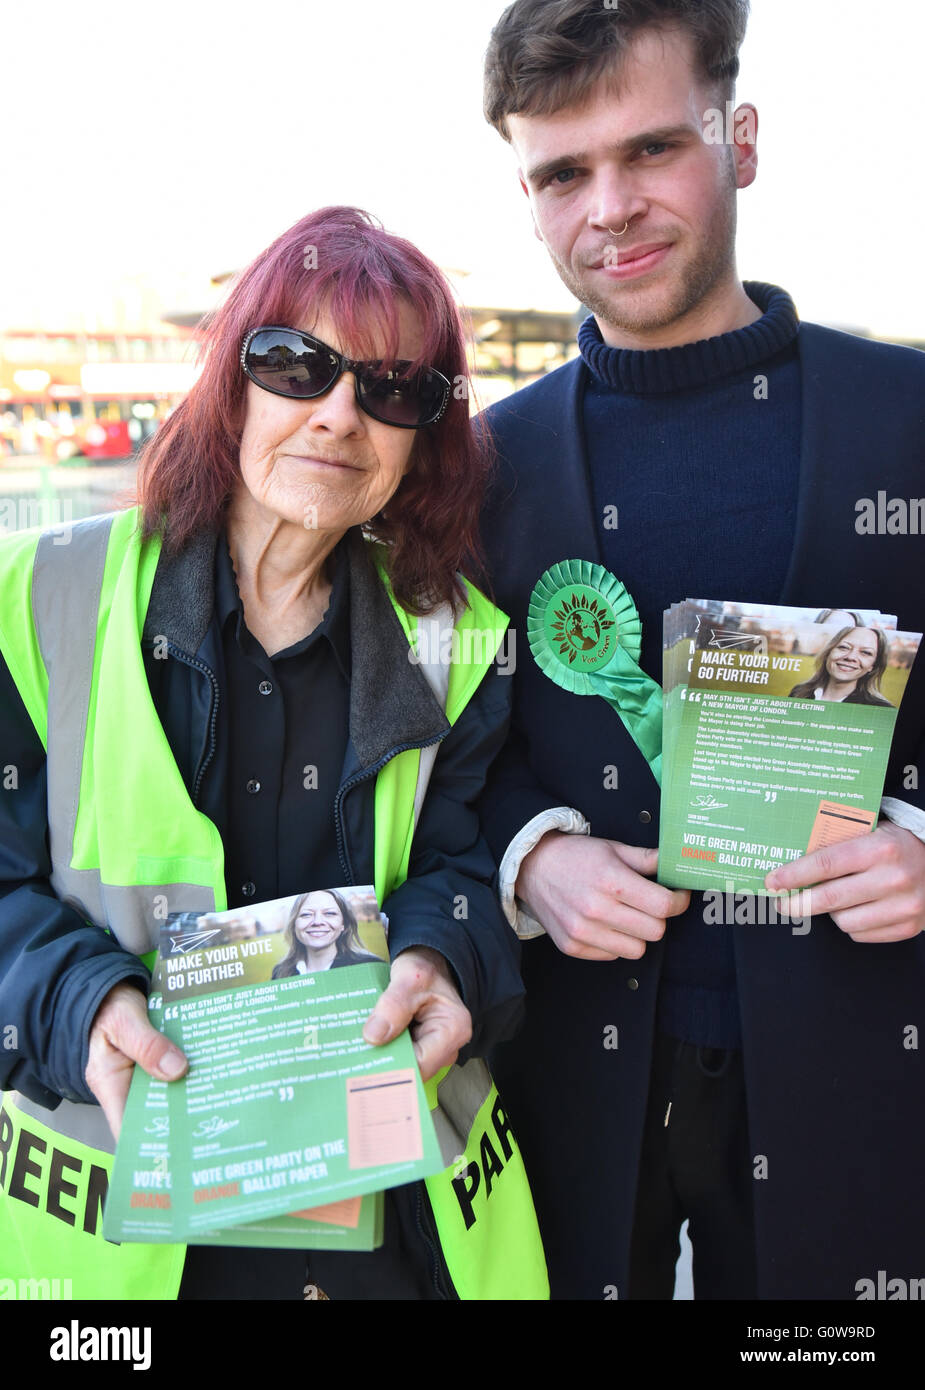 Turnpike Lane, London, UK. 4th May 2016. London Mayoral elections: Green Party activists hand out leaflets - Stock Image